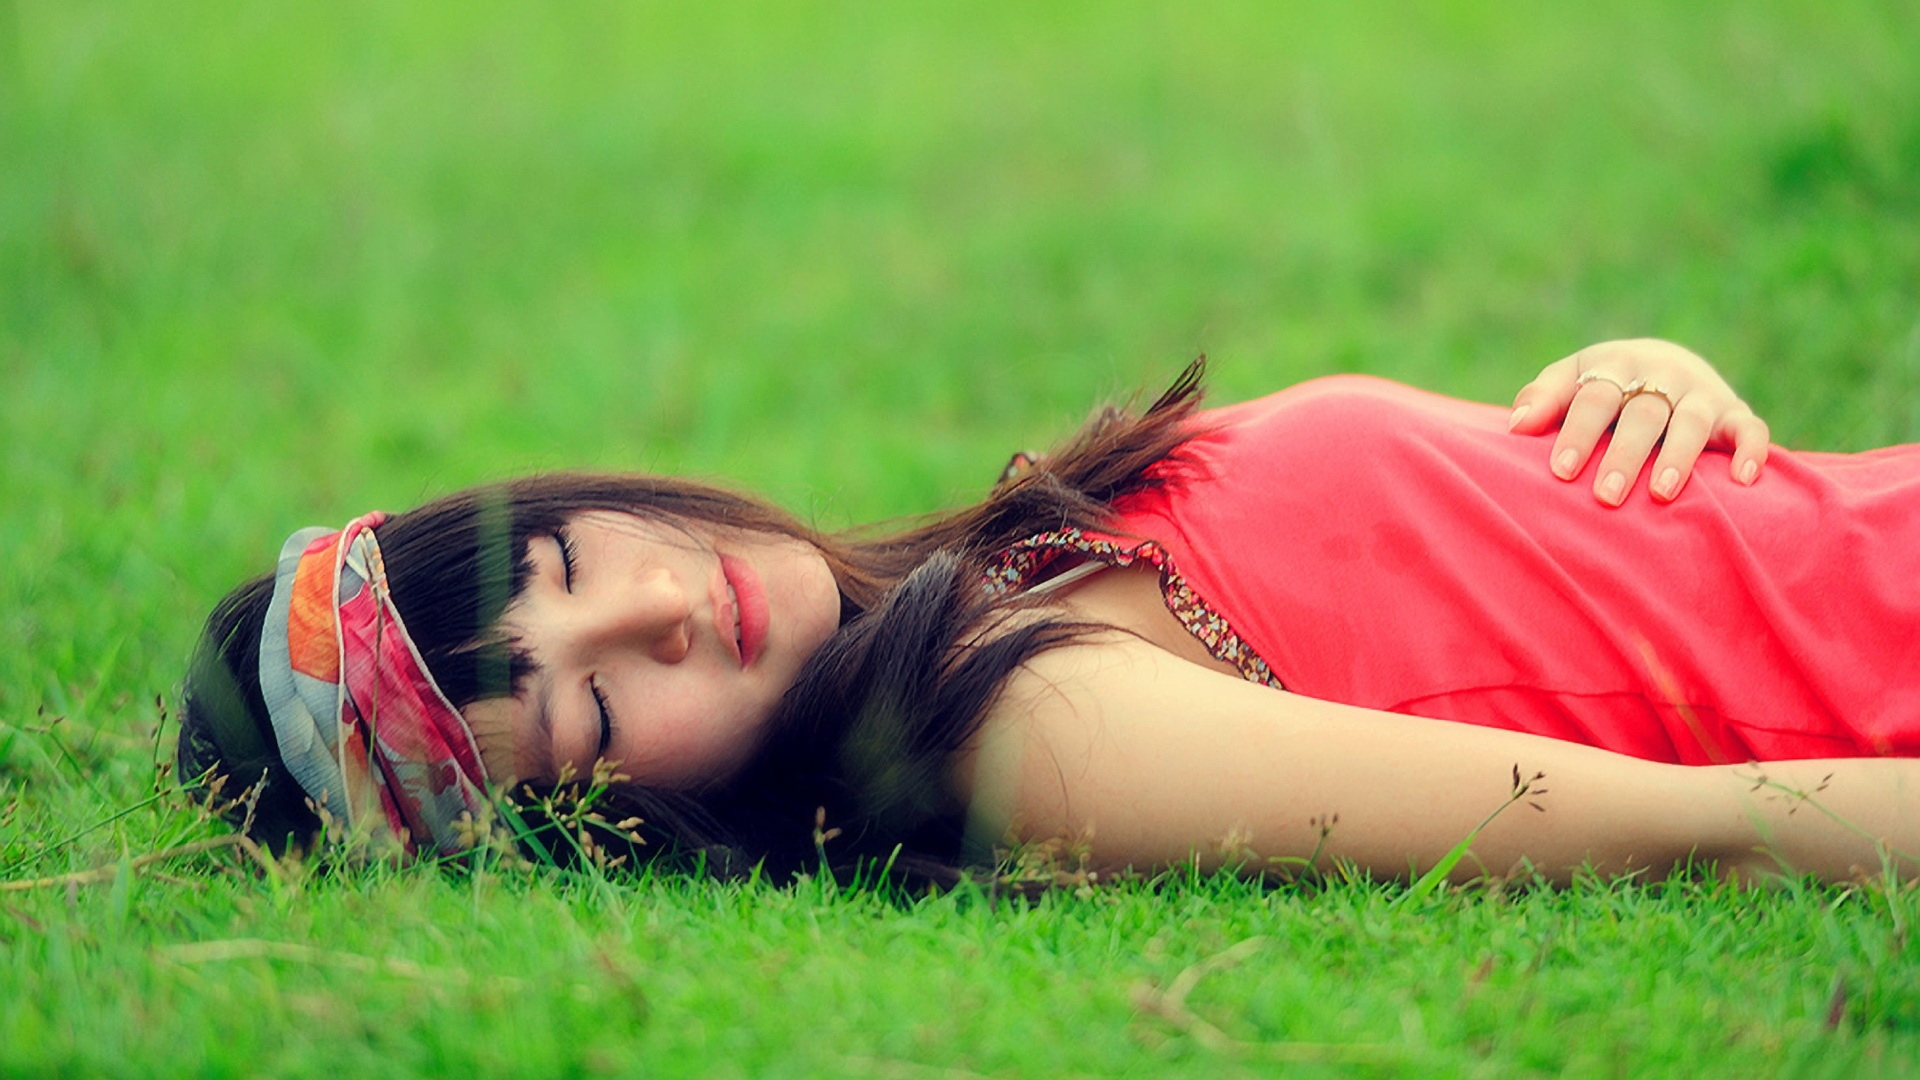 brunette_grass_emotions_relaxation_66077_1920x1080